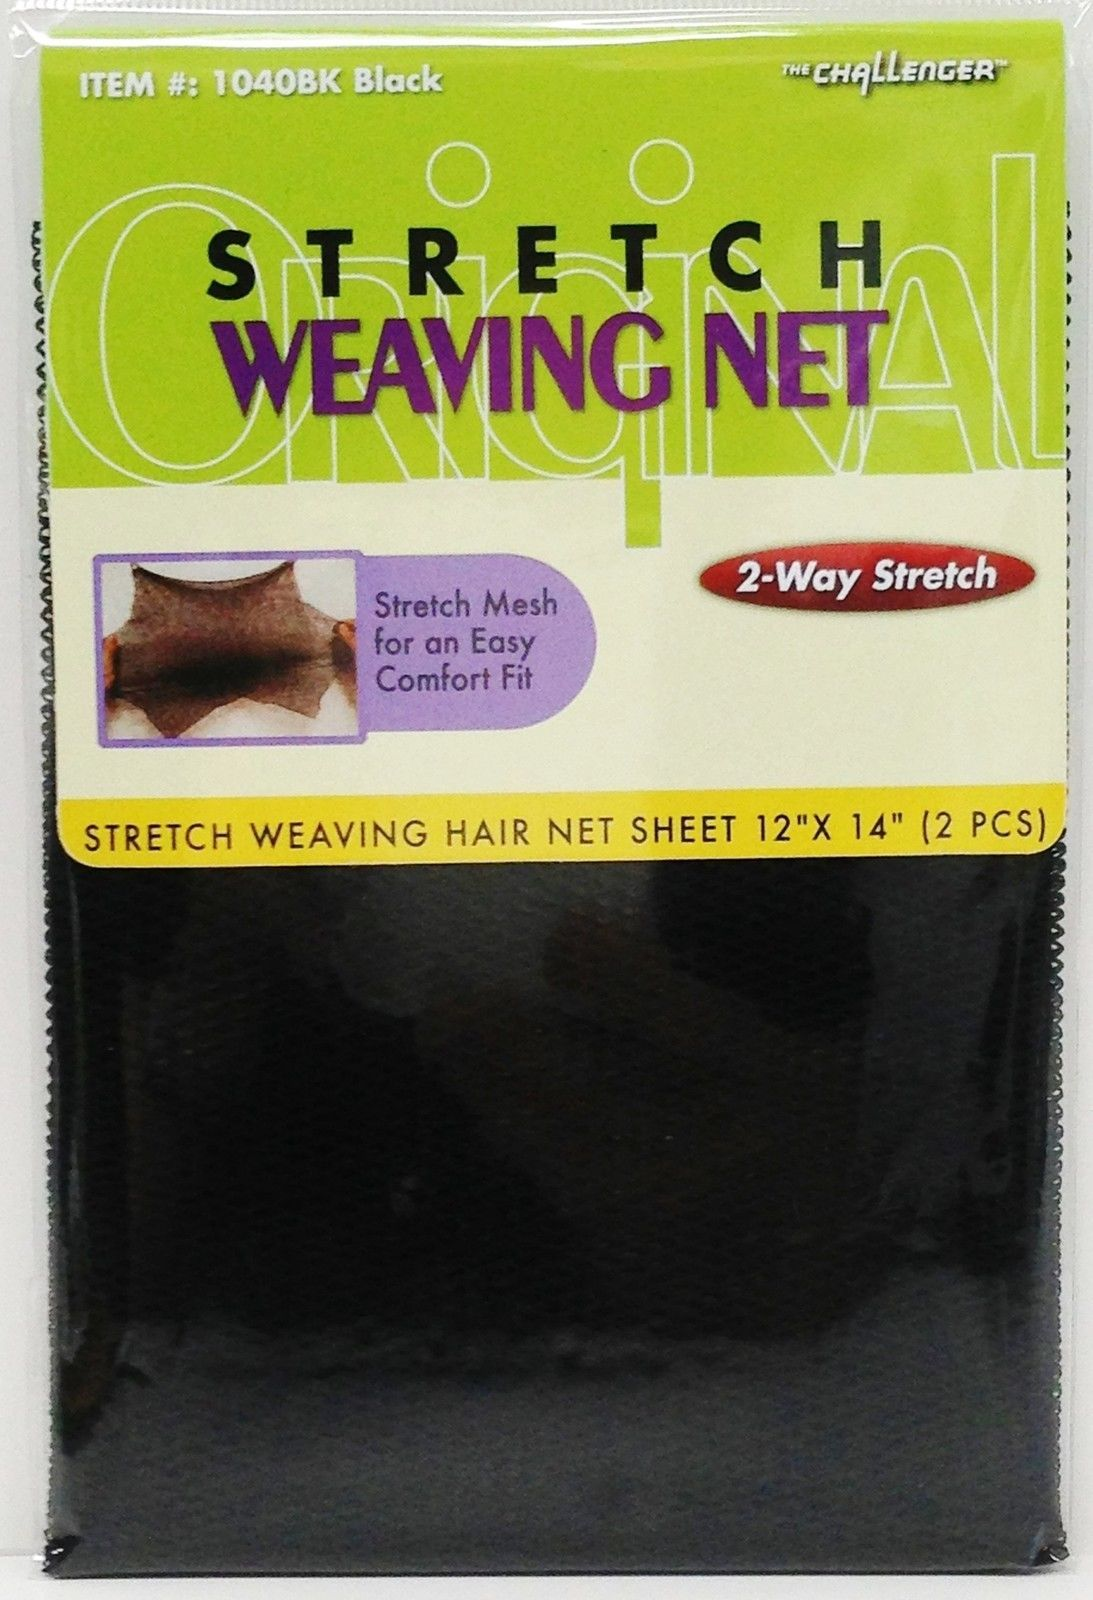 "2 PIECES STRETCH WEAVING NET 2 WAY STRETCH #1040BK BLACK 12""X14"" THE CHALLENGER"